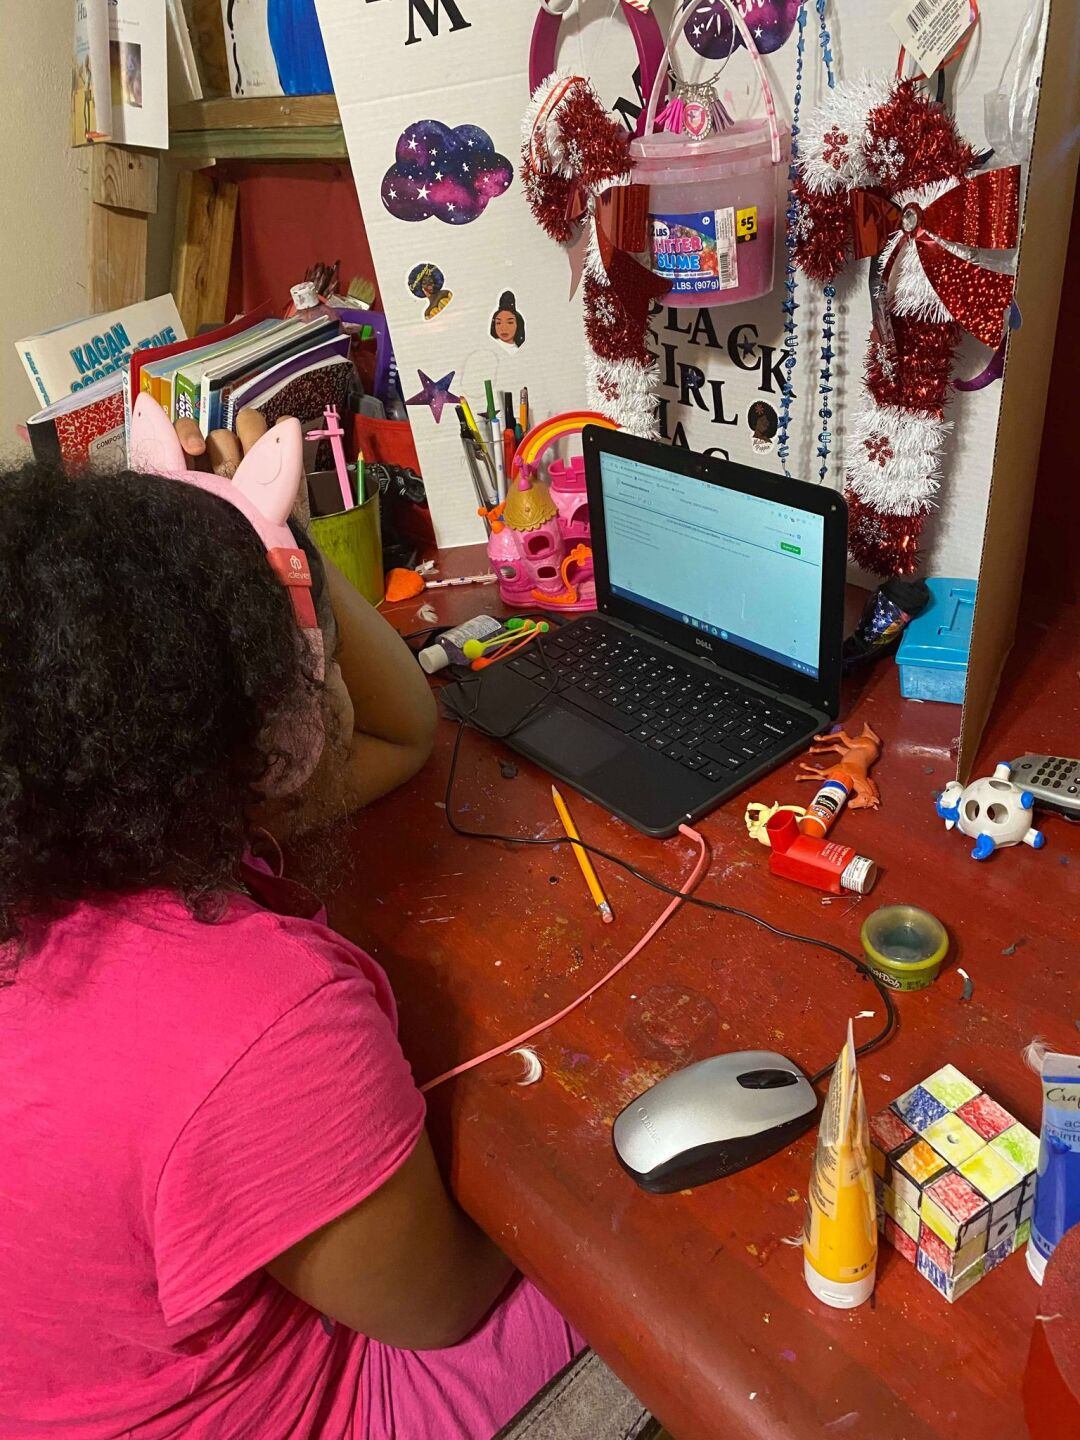 Rahmings says she's transformed her grandchildren's workspace into a learning center to help drive productivity.